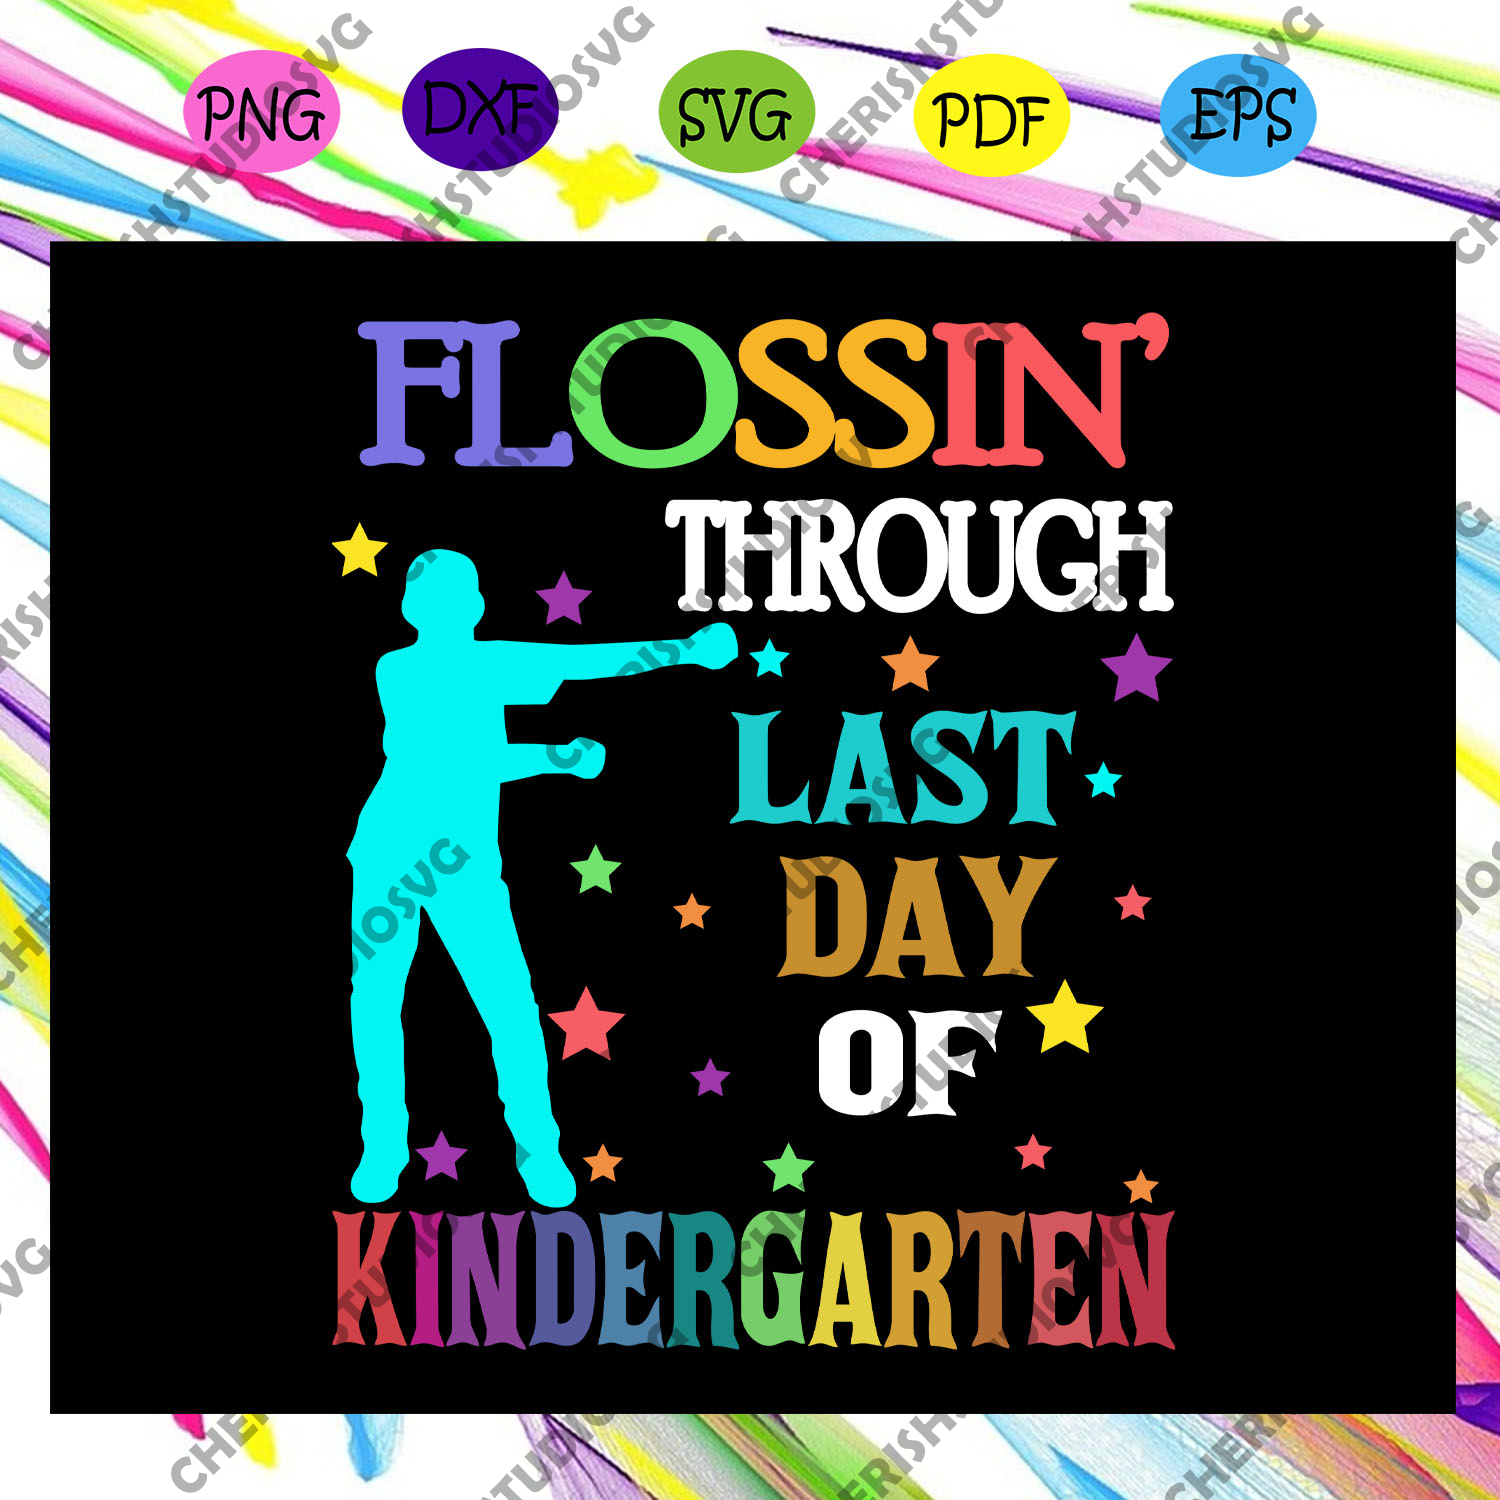 Flossin' through last day of kindergarten, graduation svg, graduation gift, graduate svg, school svg, last day of school, 2032 graduate svg, end of school svg, trending svg Files For Silhouette, Files For Cricut, SVG, DXF, EPS, PNG, Instant Download